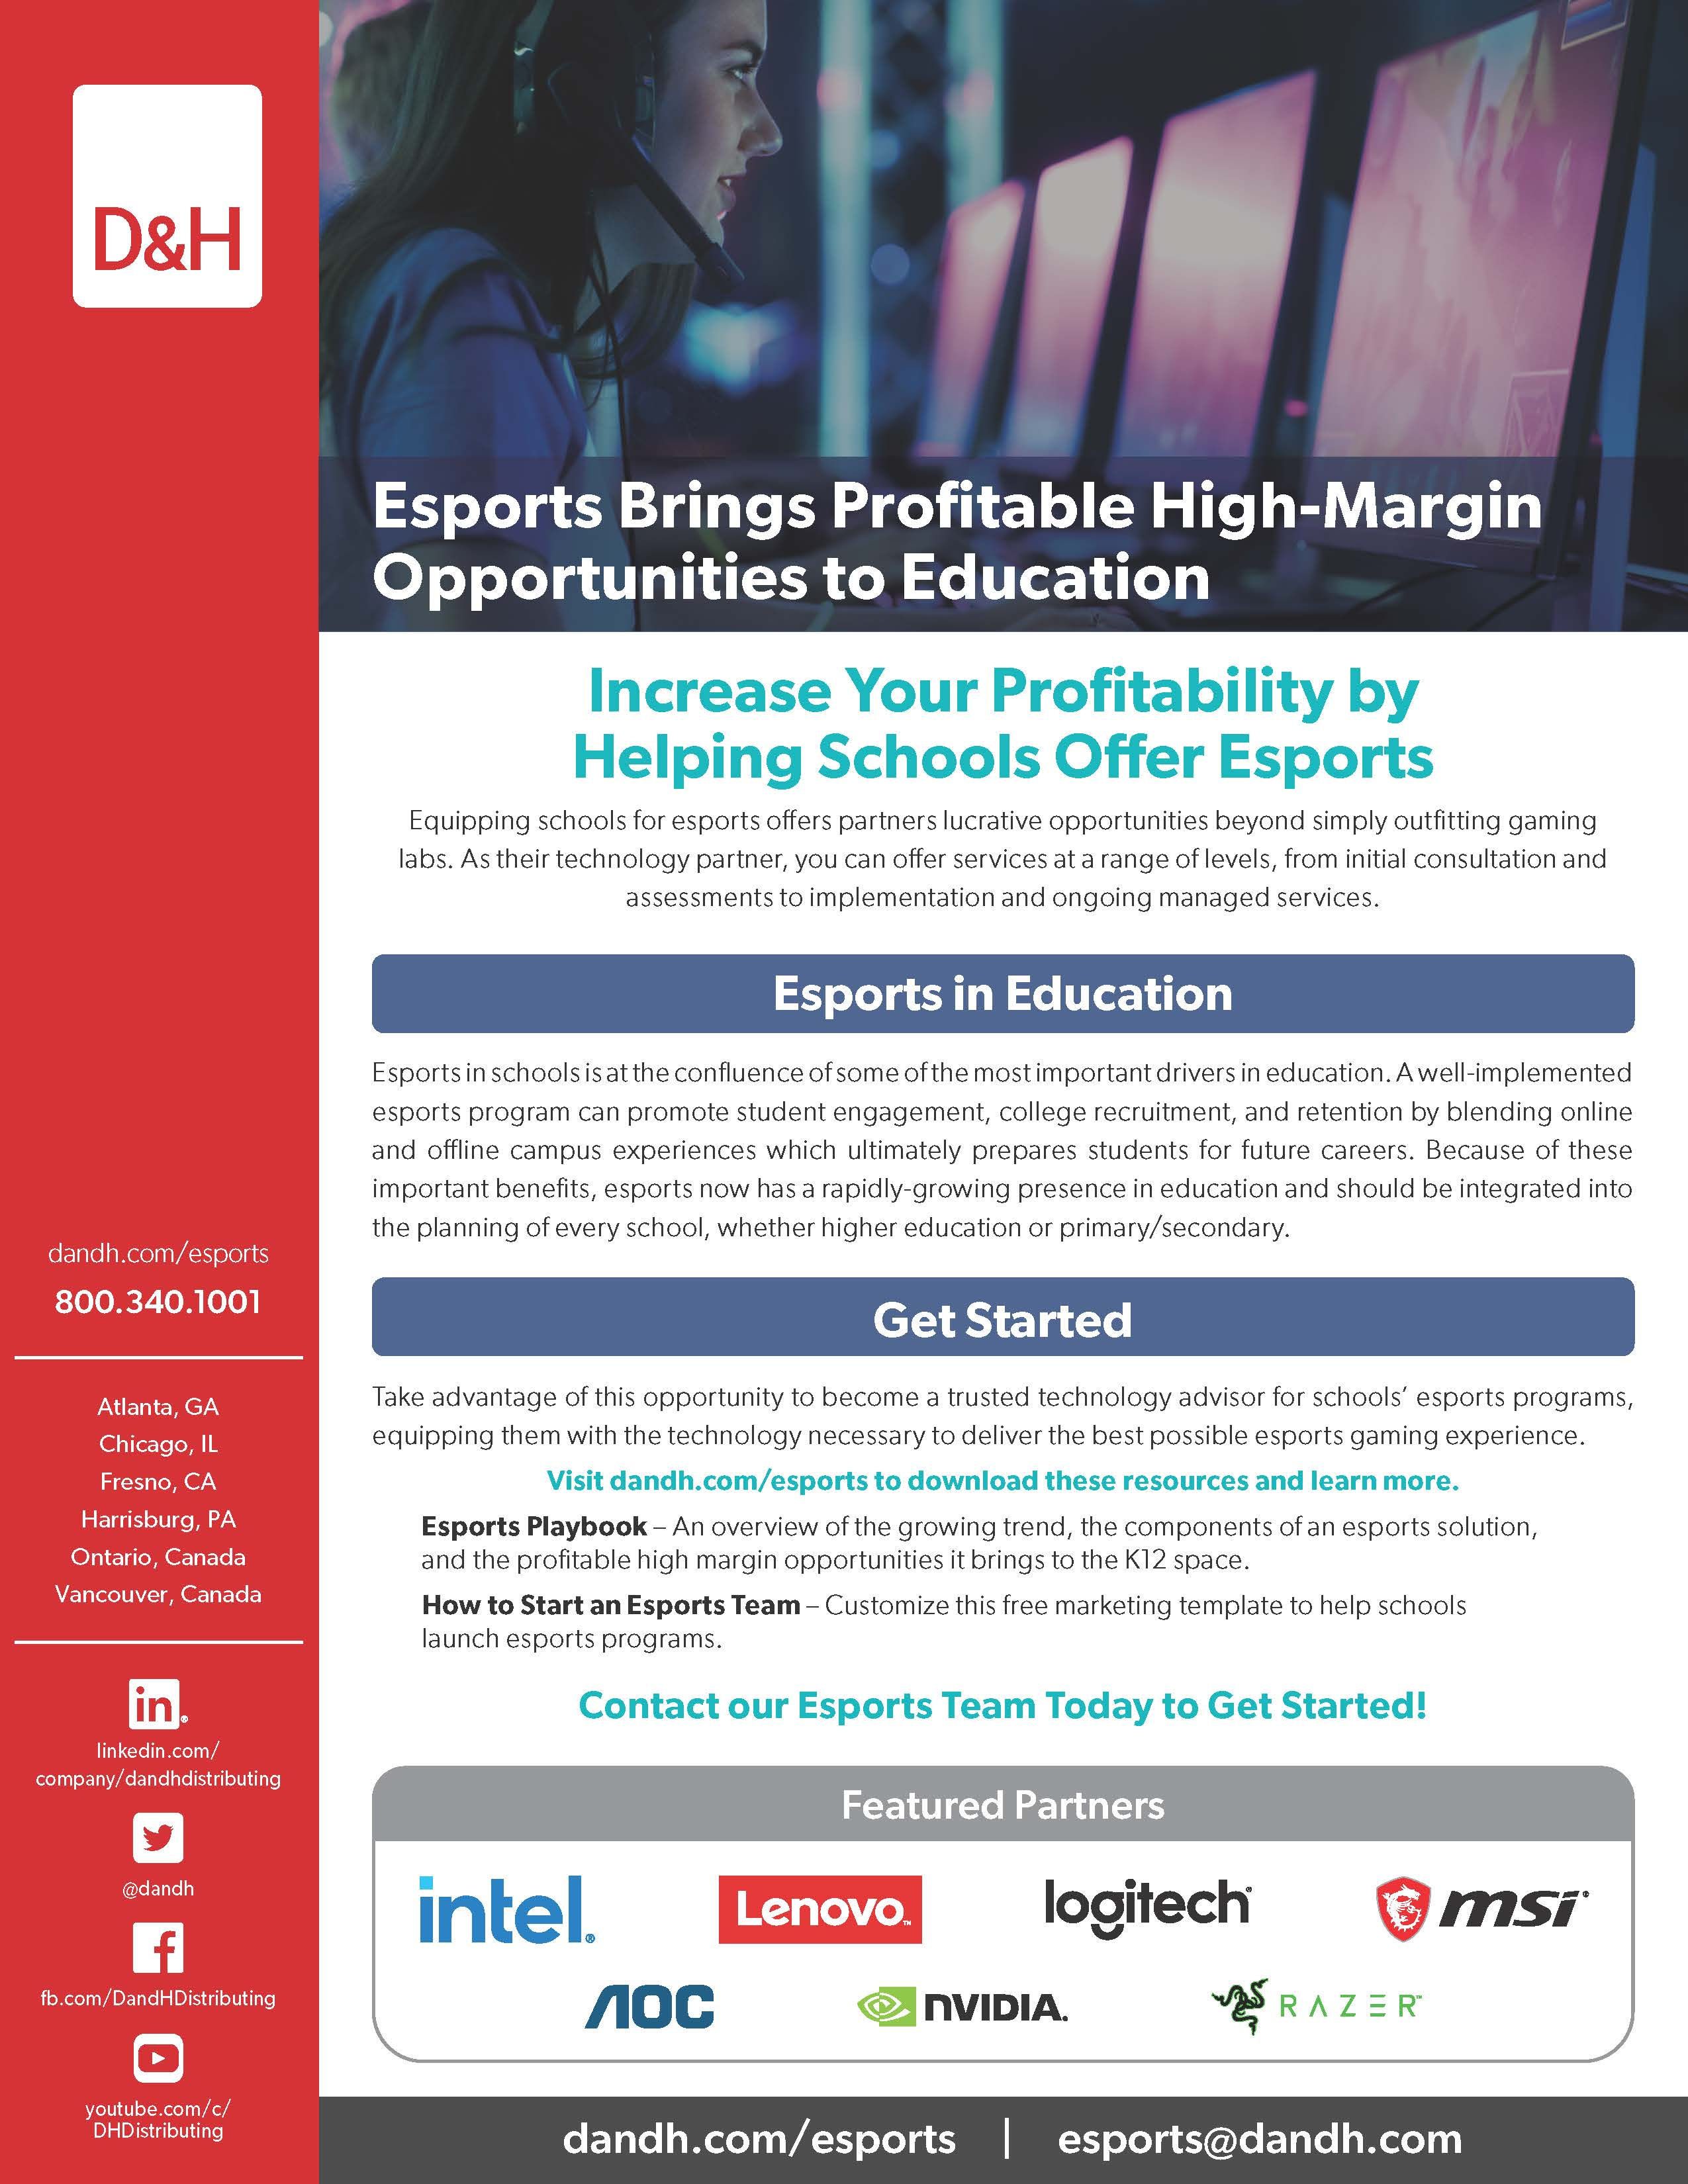 Increase Your Profitability by Helping Schools Offer Esports